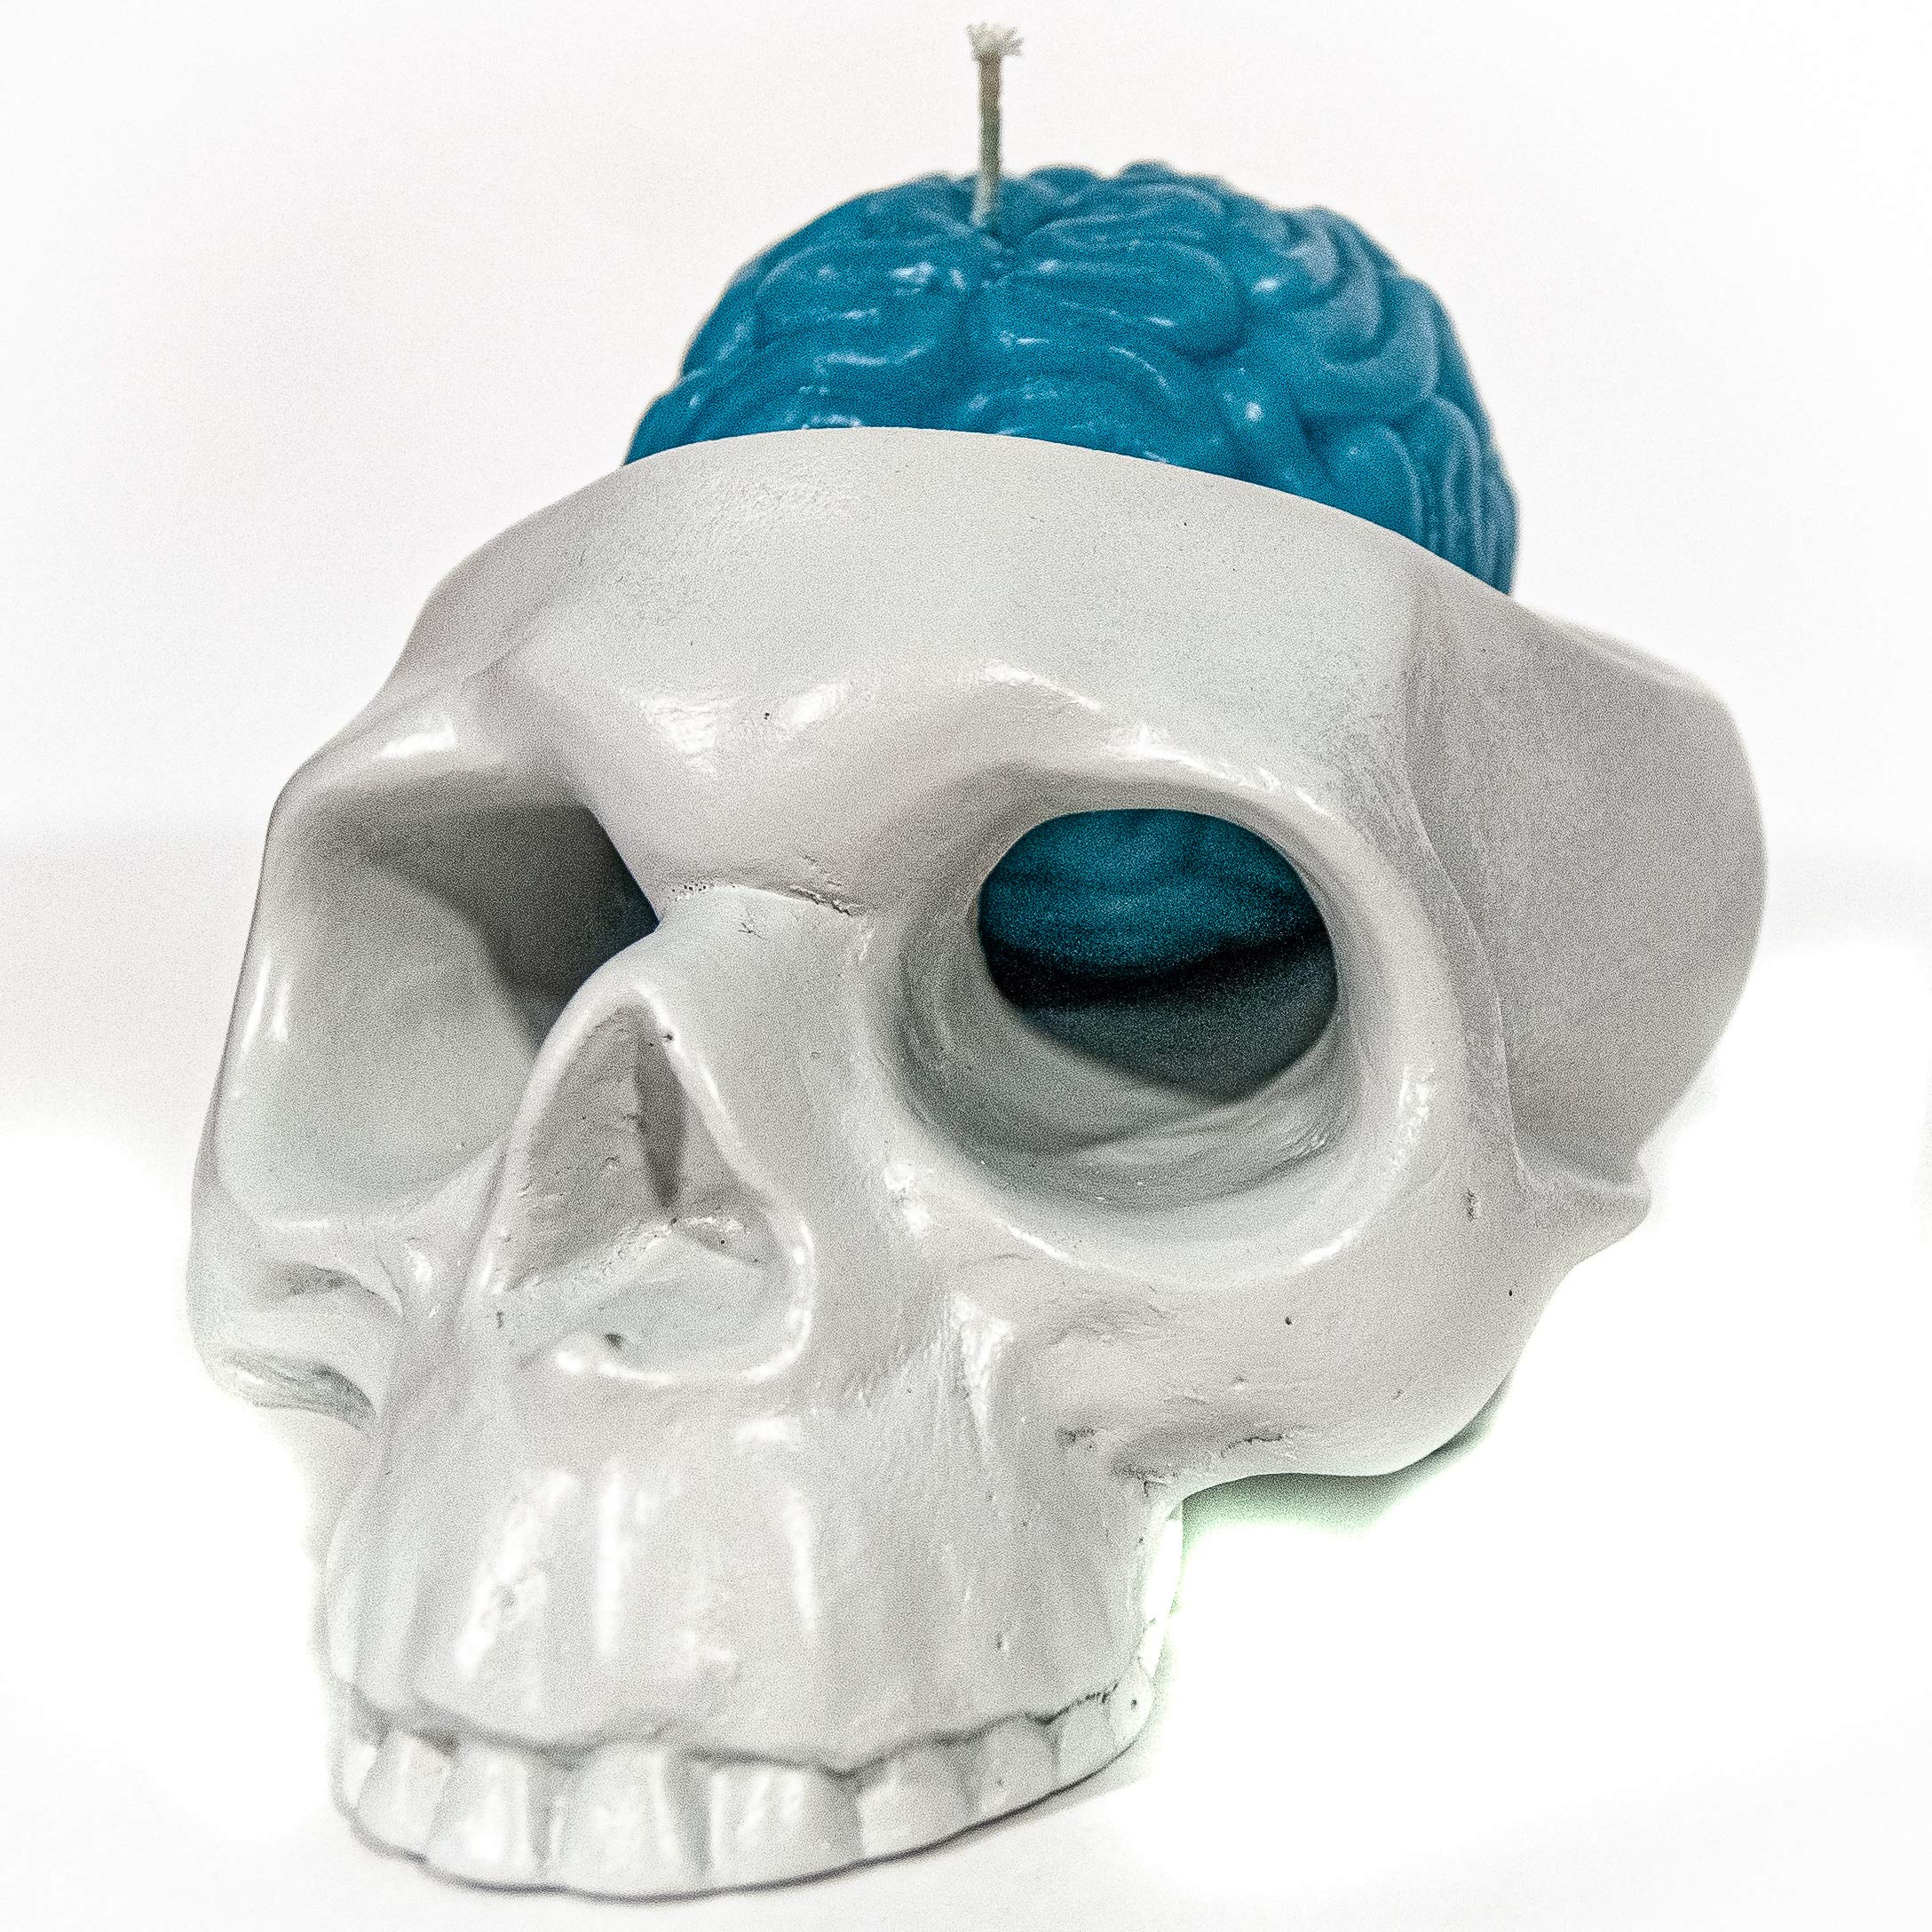 My Geek Things Scandle Skull Candleholder with a Brain Candle (Pearl Grey/Aqua Blue)